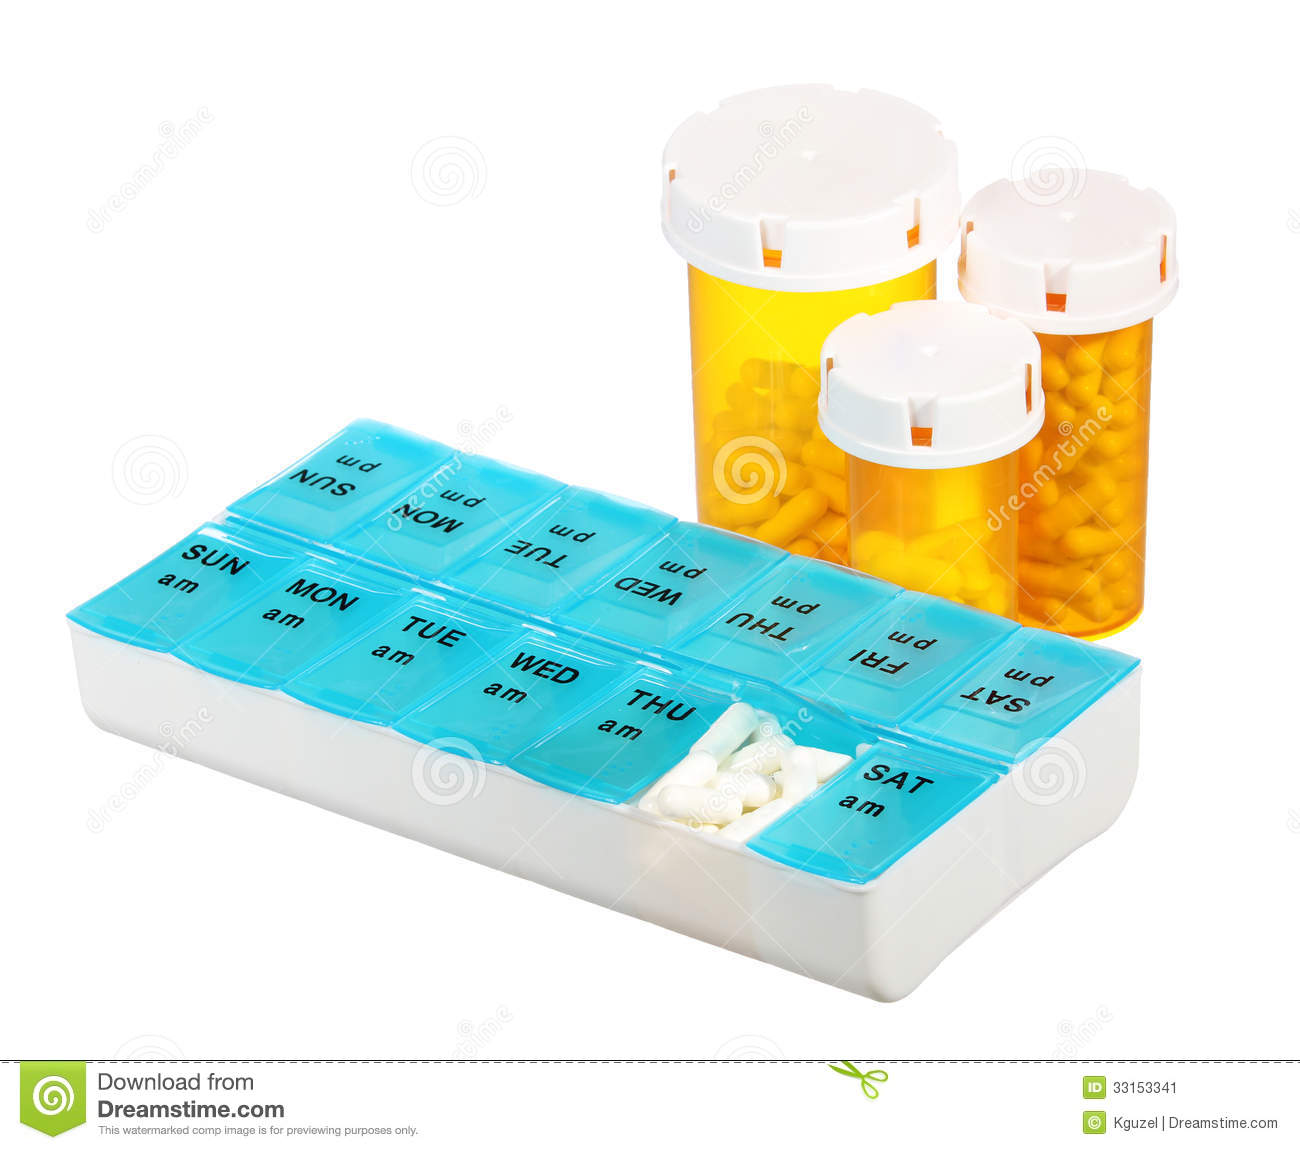 Pill bottles and medicine dose box isolated on white background. Weekly dosage of medication in pill dispenser